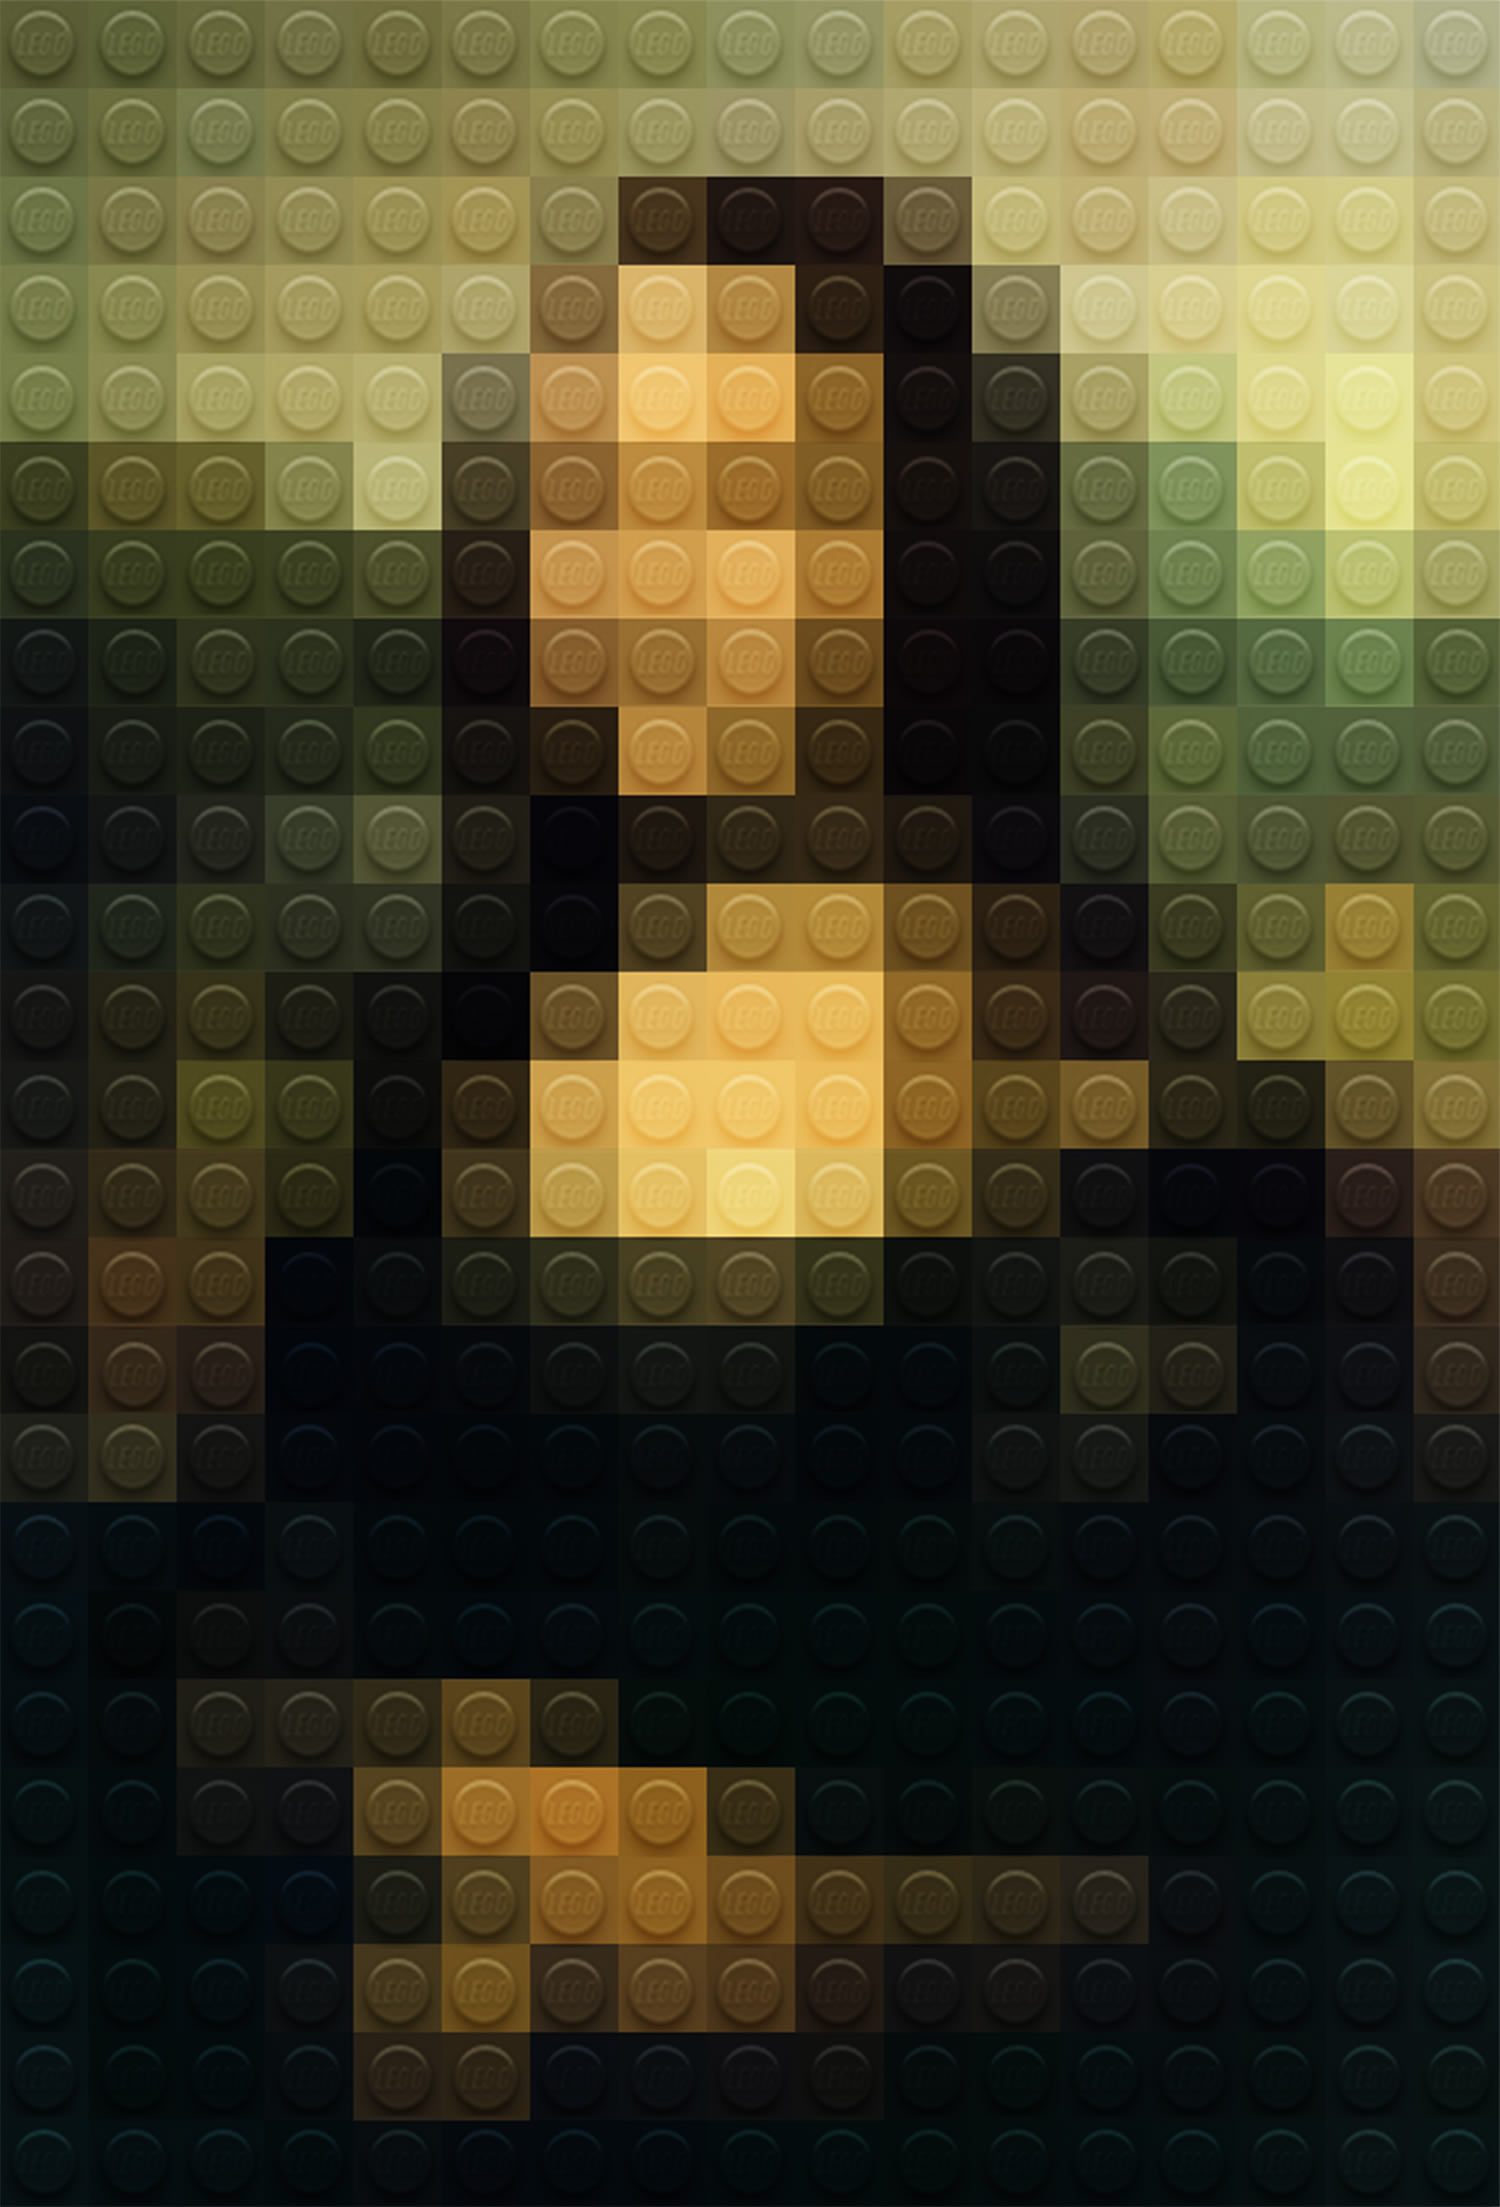 mona lisa in lego, poster by marco sodano